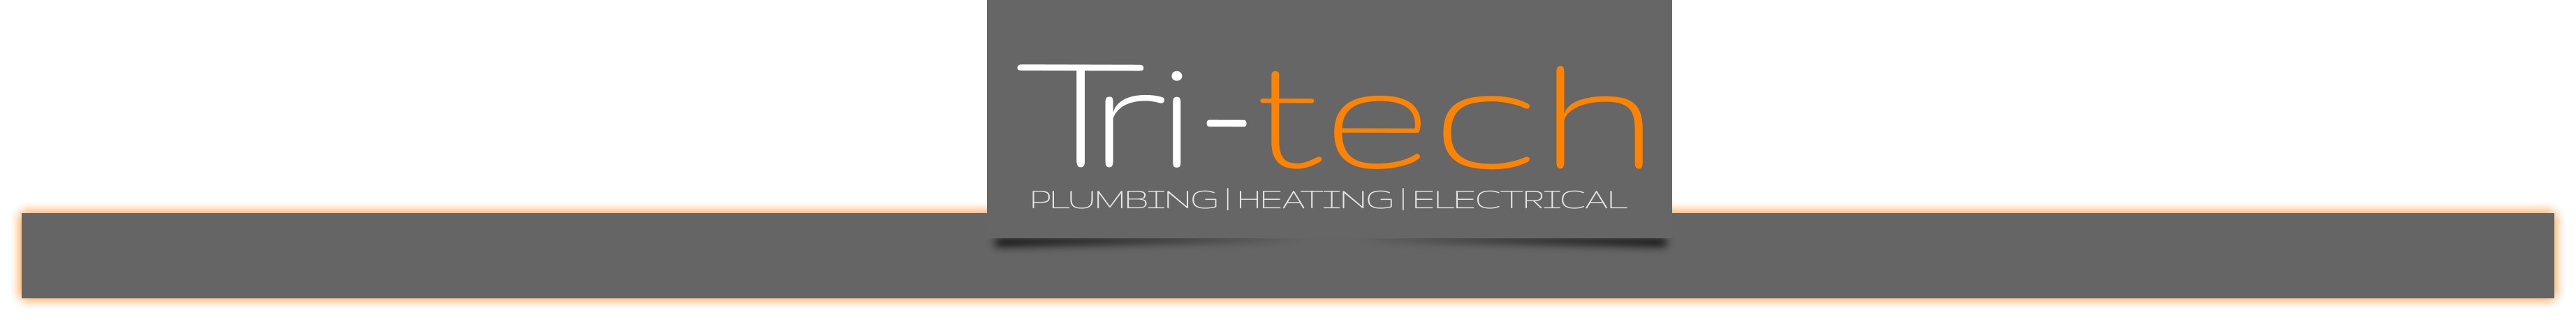 Tri-tech PLUMBING | HEATING | ELECTRICAL